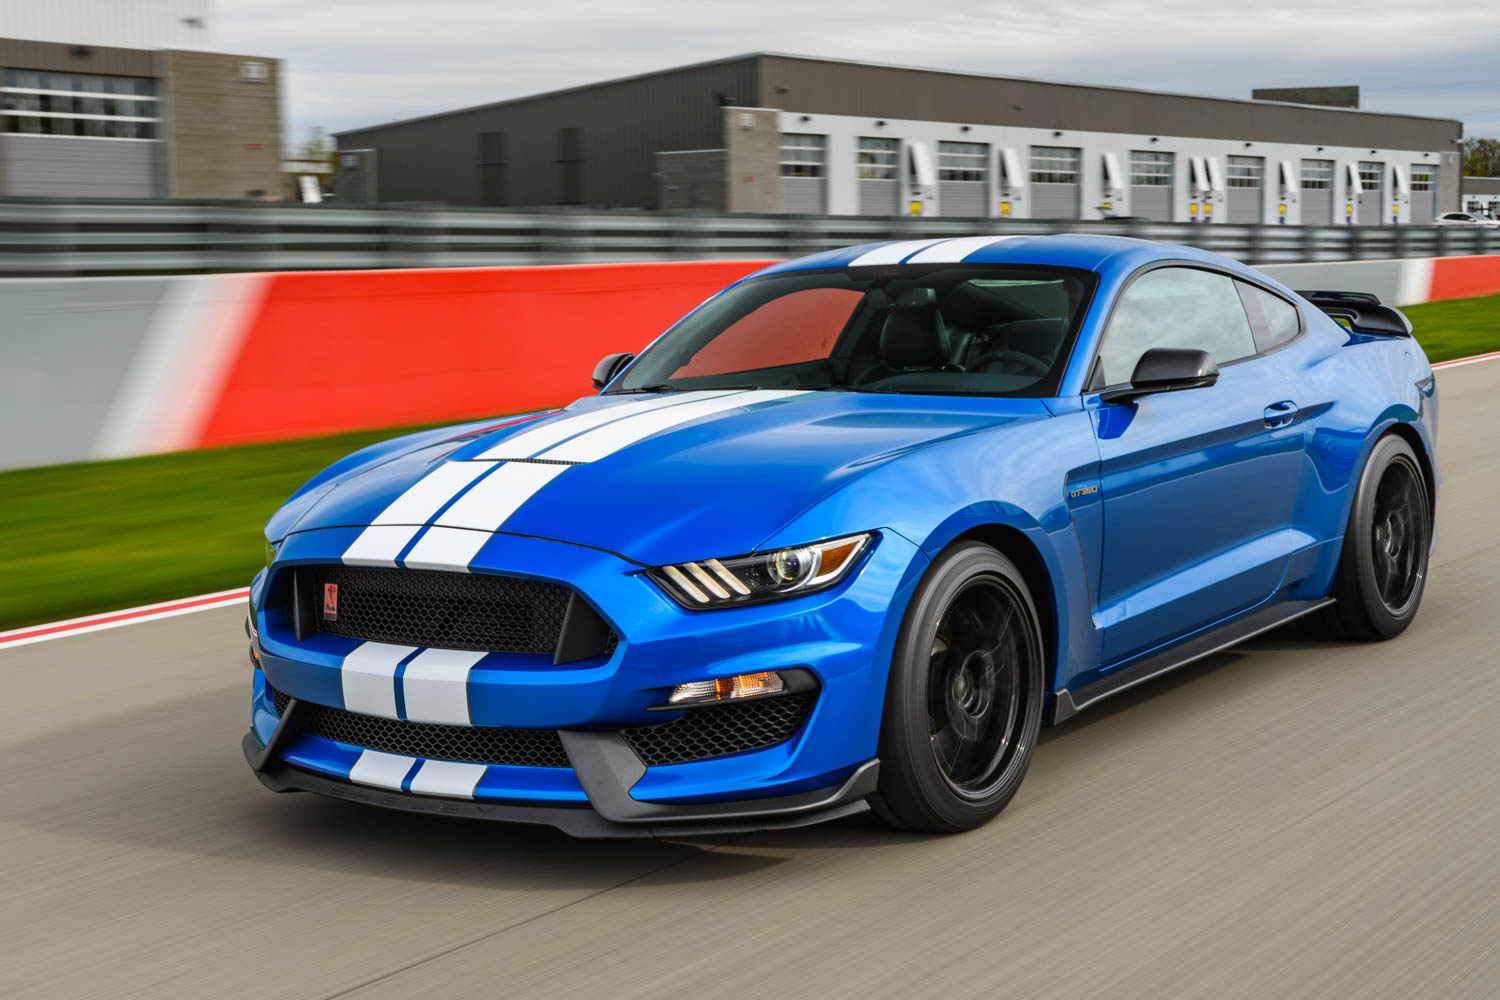 2019 Ford Mustang Shelby GT350 racing